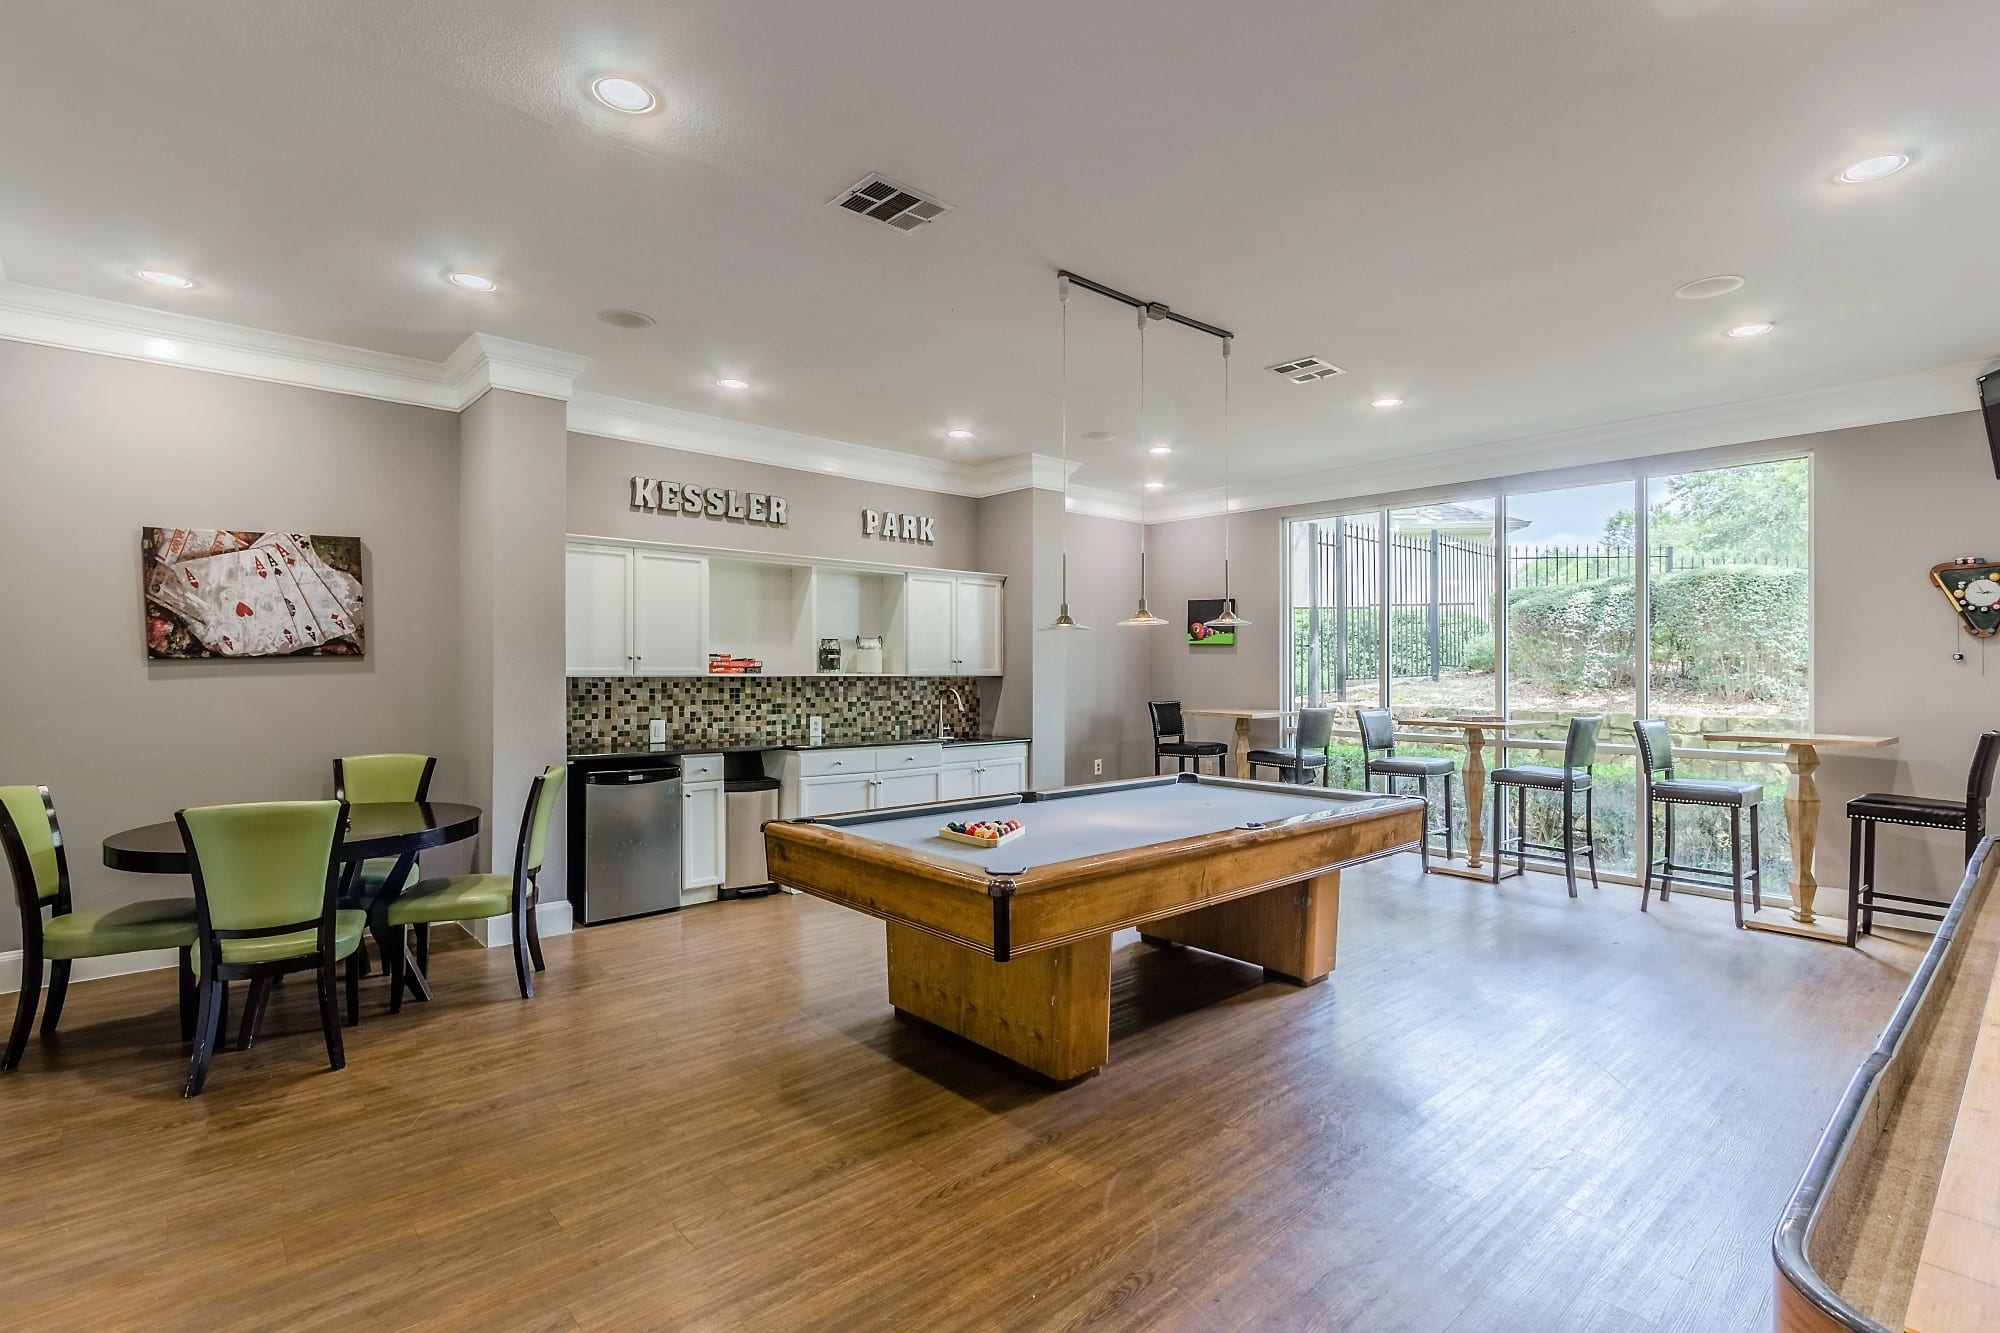 Game Room with Shuffle Board and Billiards